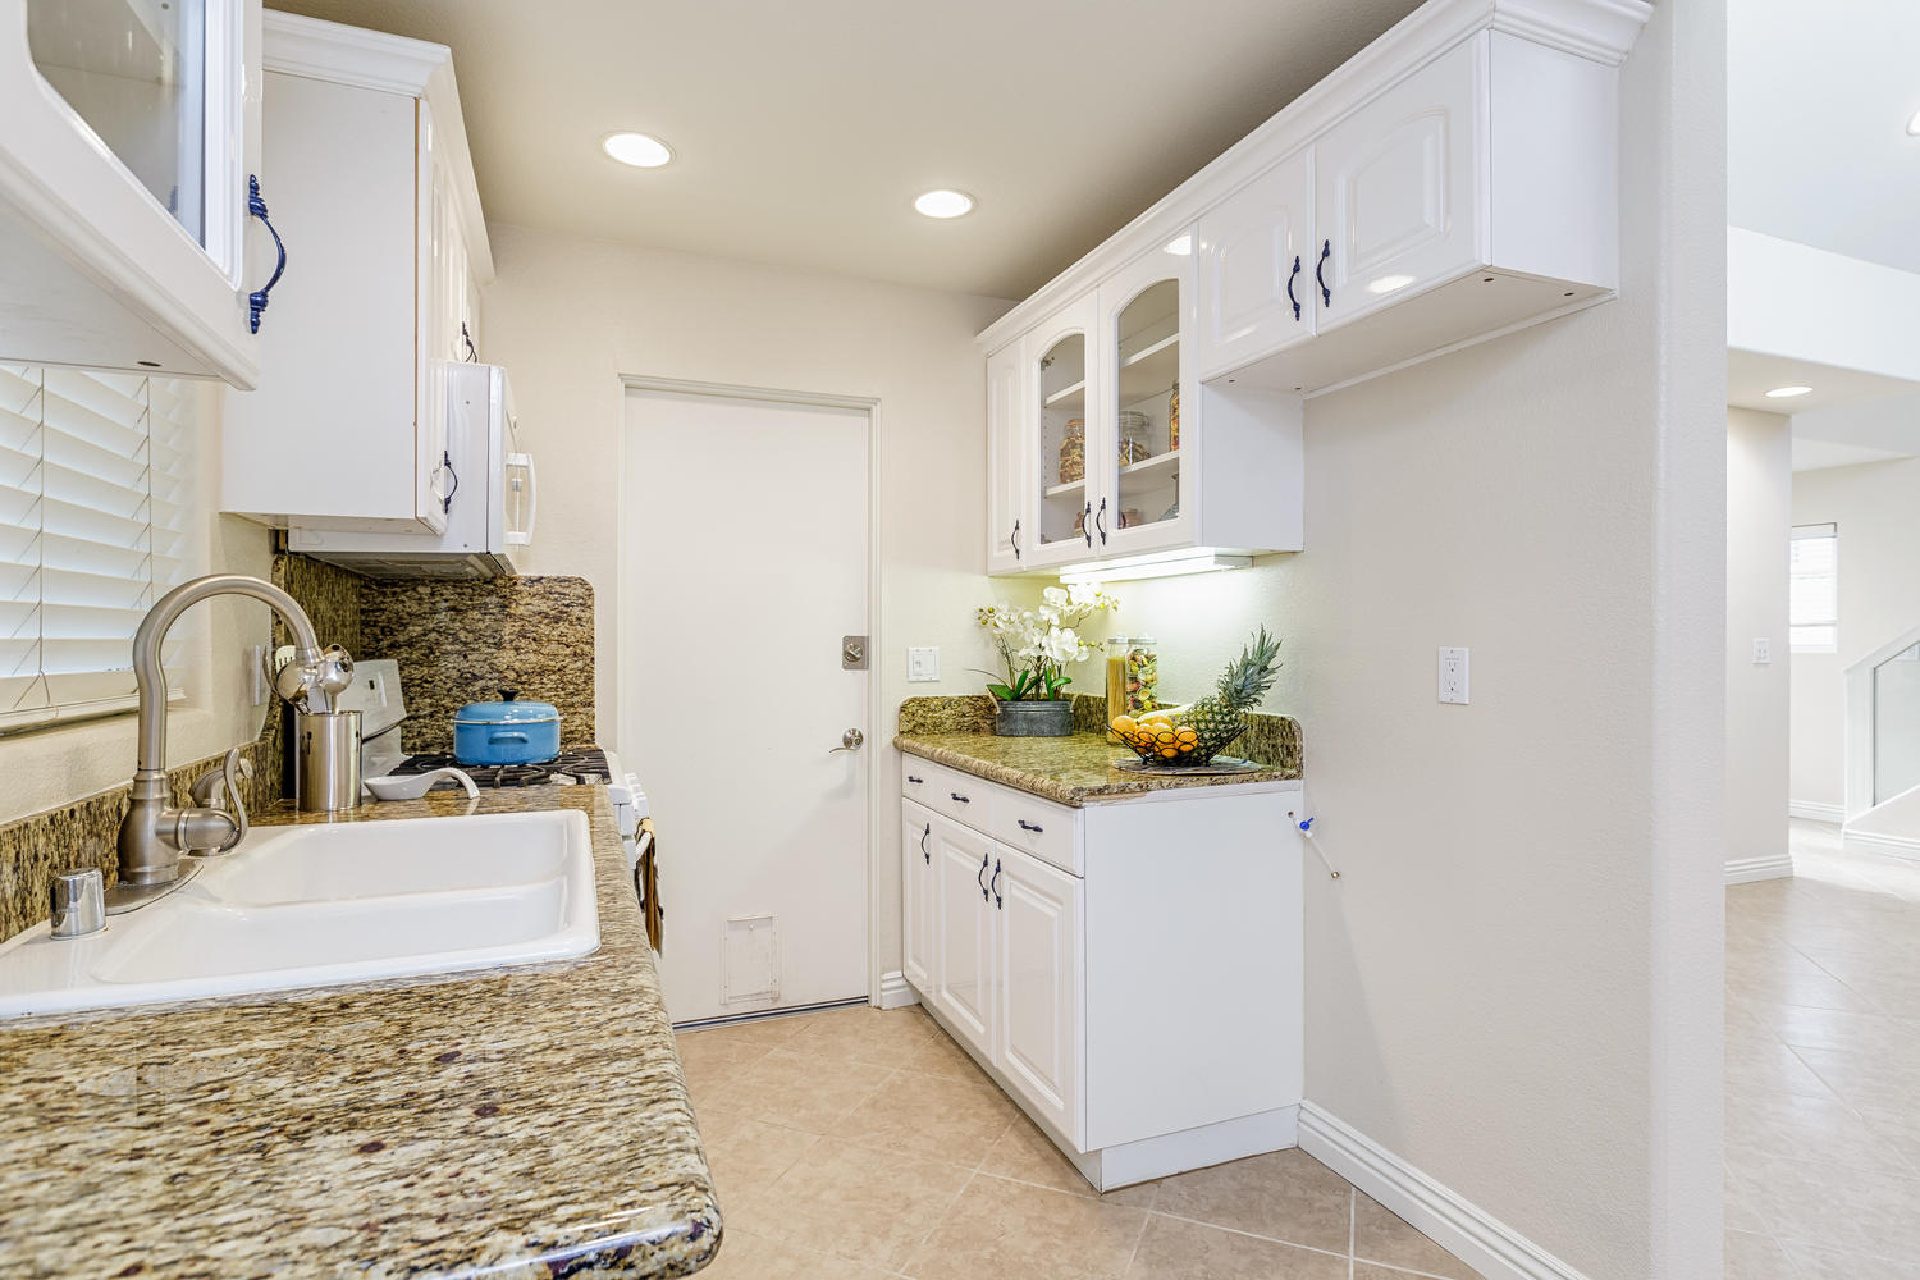 http://www.addressrealestate.com/media/images/blogs/38/2/b_6-1408-ocean-dr-oxnard-ca-93035-mls-size-006-18-kitchen-1500x1000-72dpi.jpg